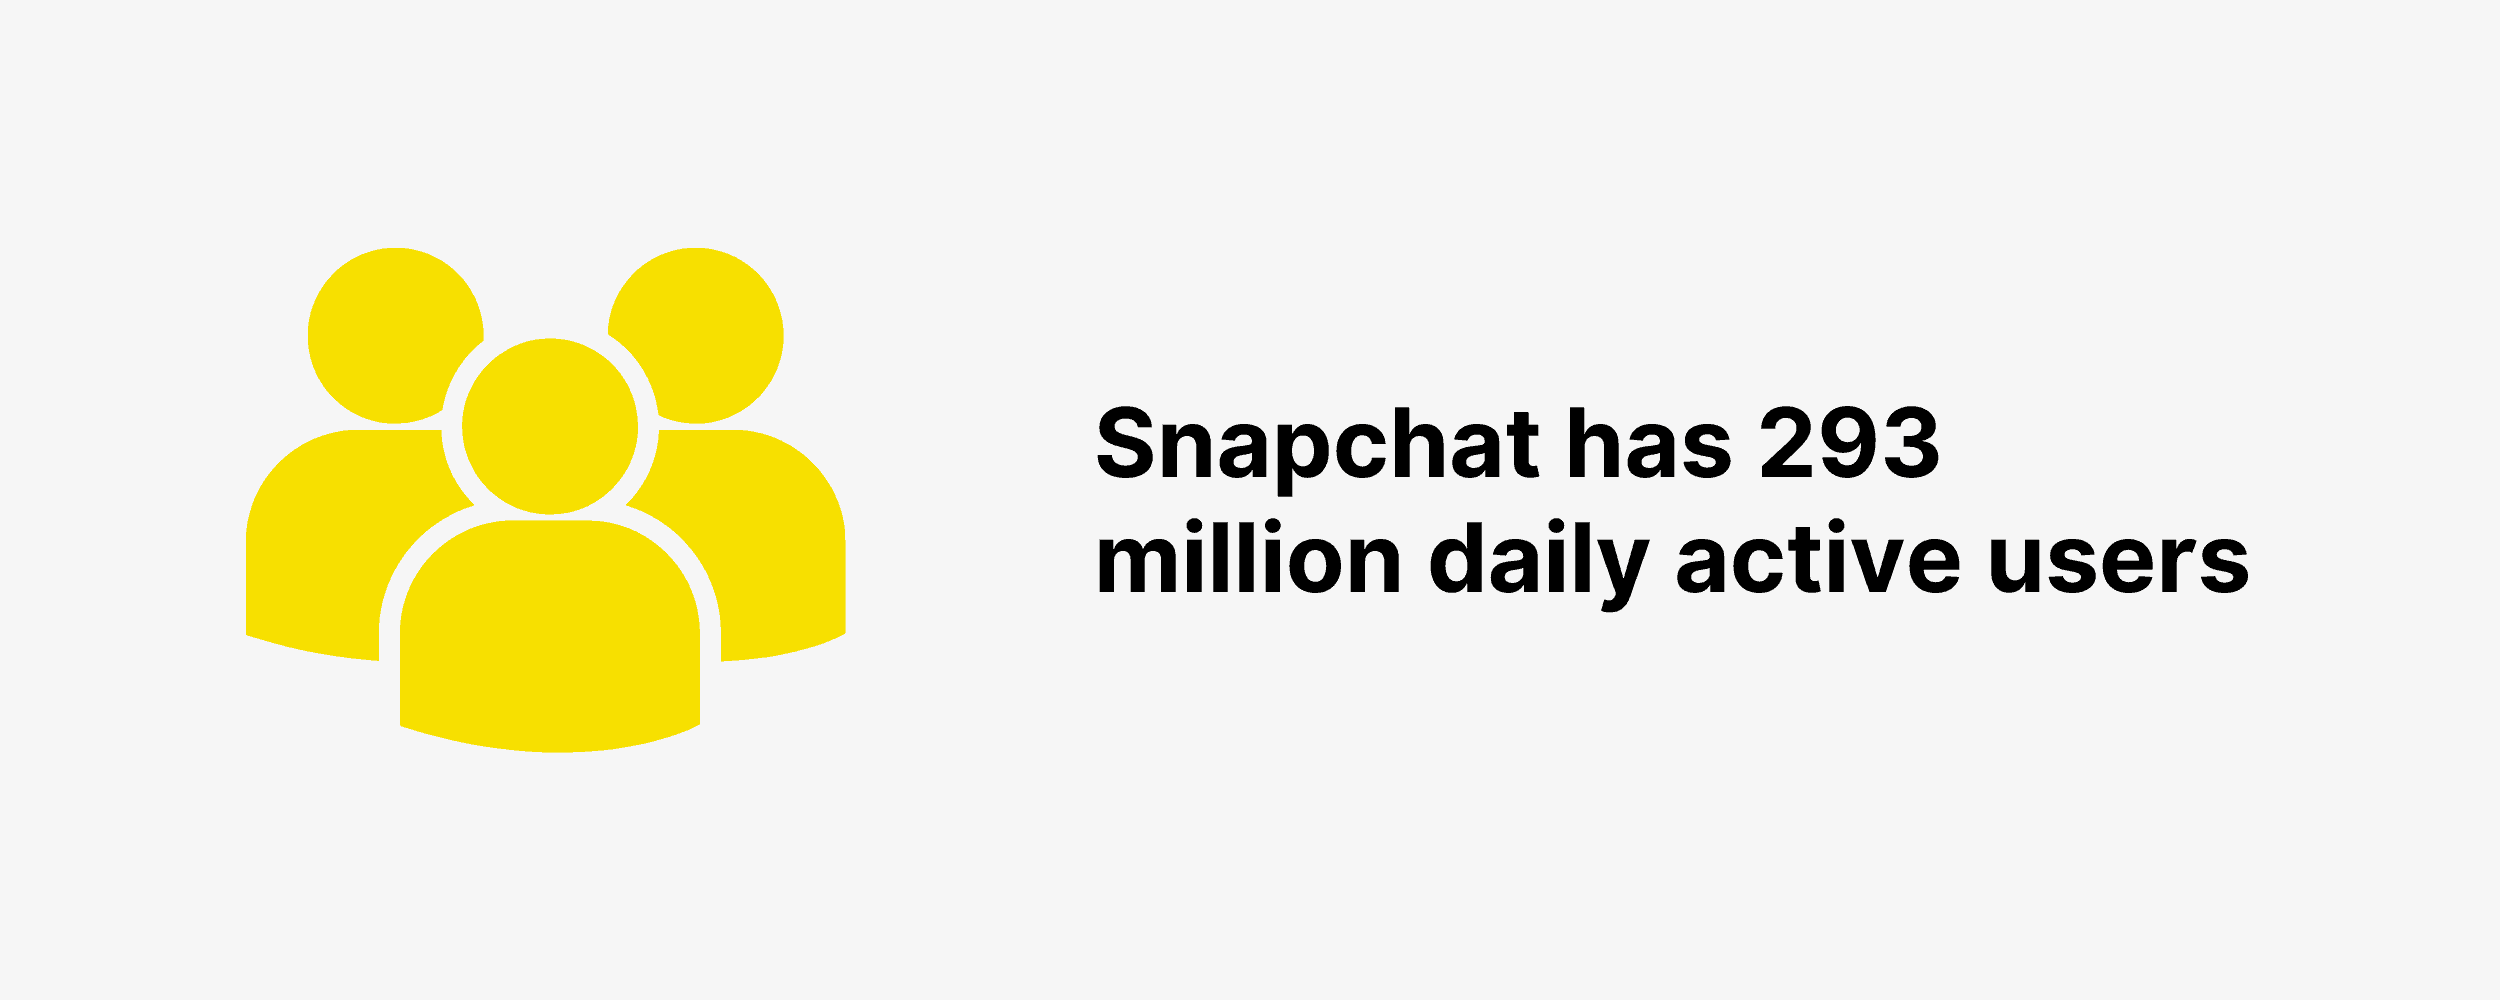 Snapchat has 293 million daily active users